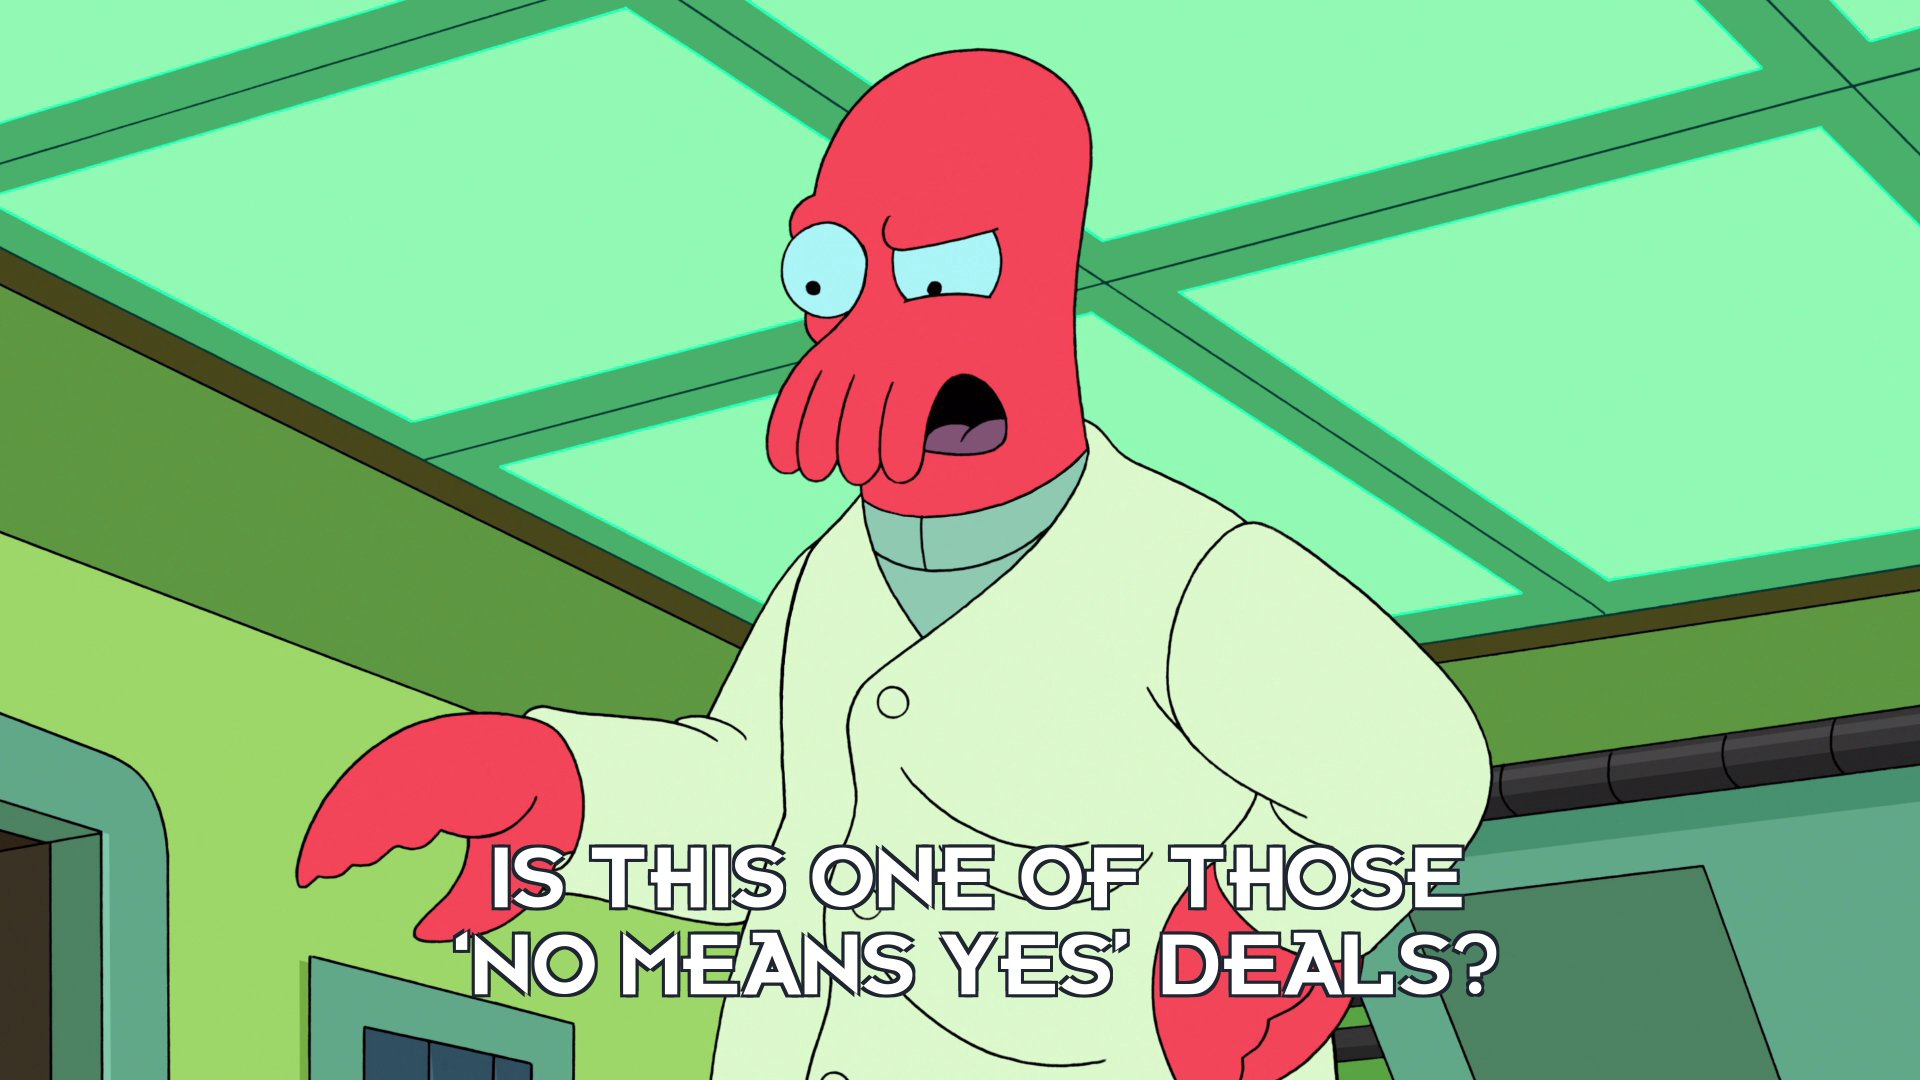 Dr John A Zoidberg: Is this one of those 'no means yes' deals?